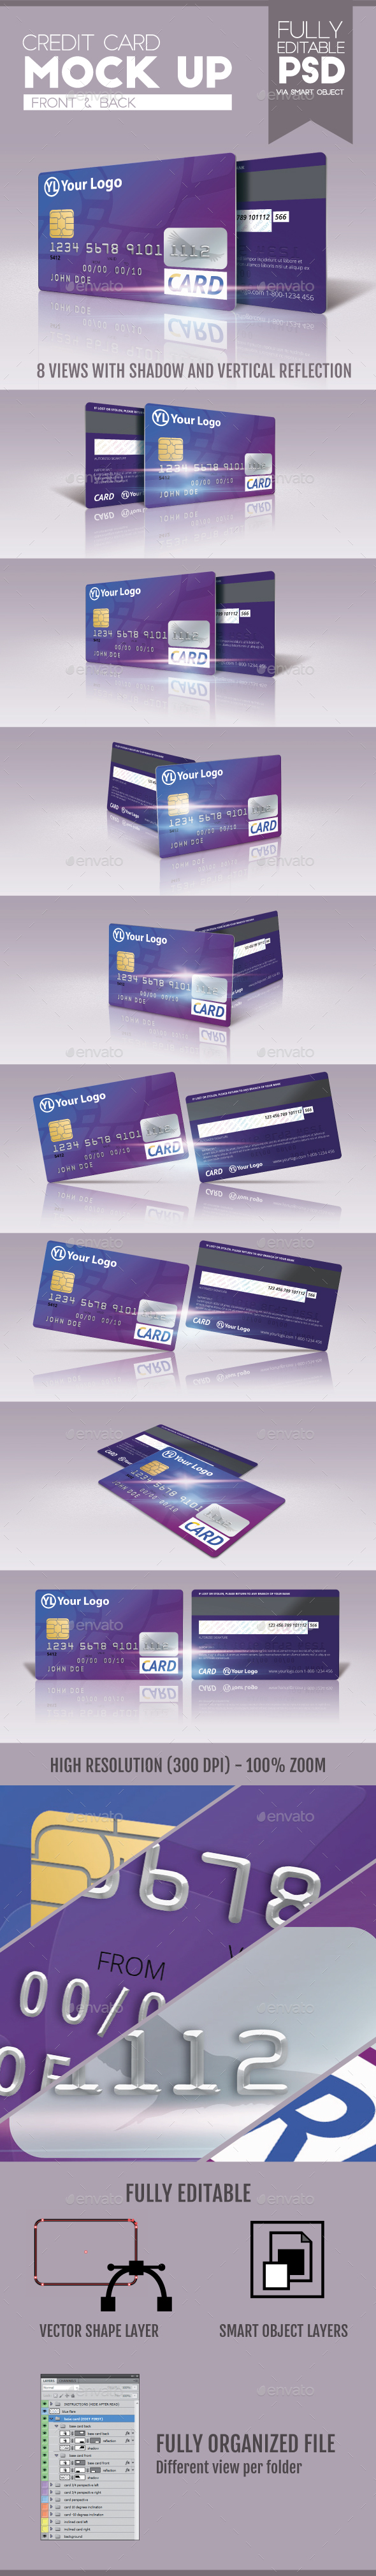 Credit Card Mock Up v.2 - Miscellaneous Print